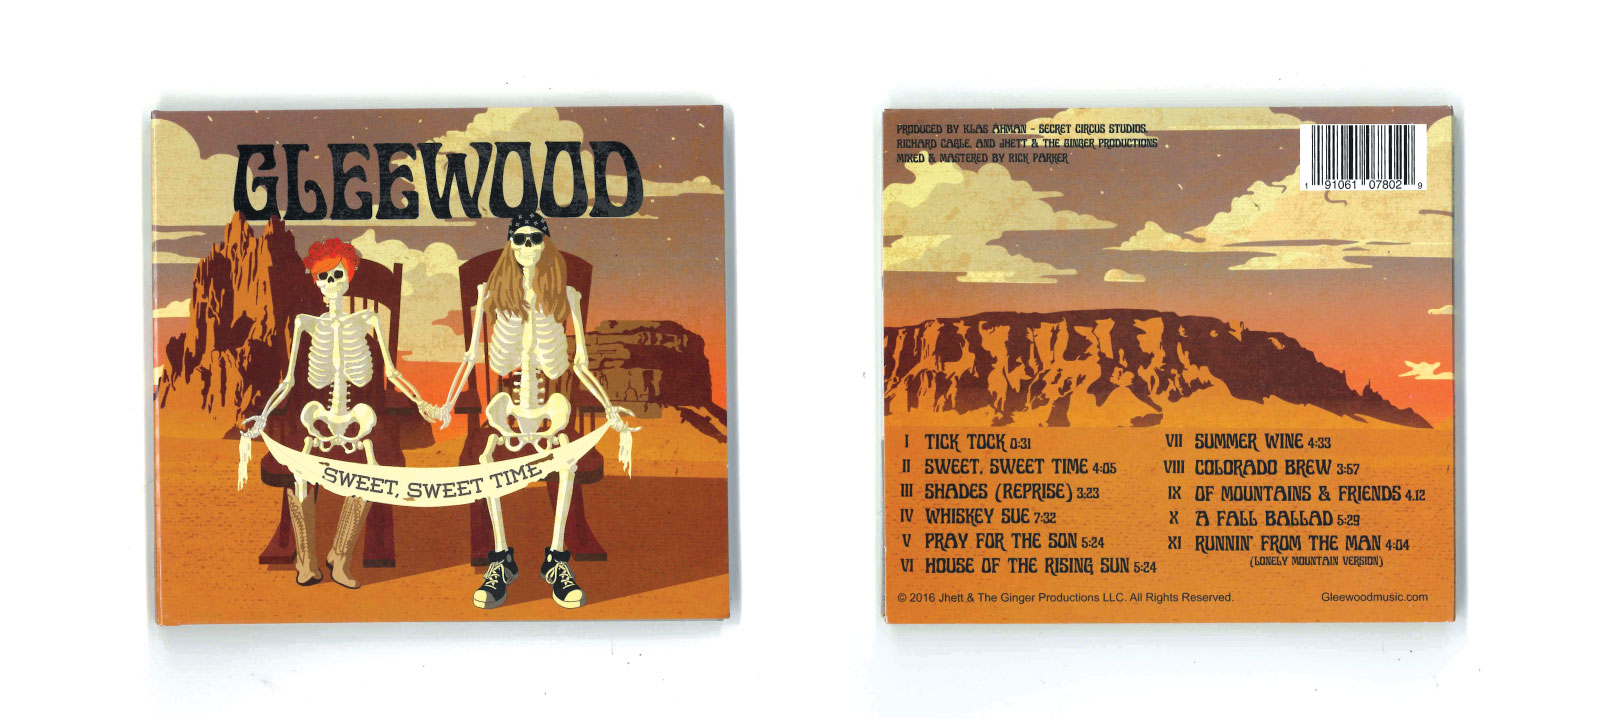 """Gleewood """"Sweet, Sweet Time"""" front and back album covers"""